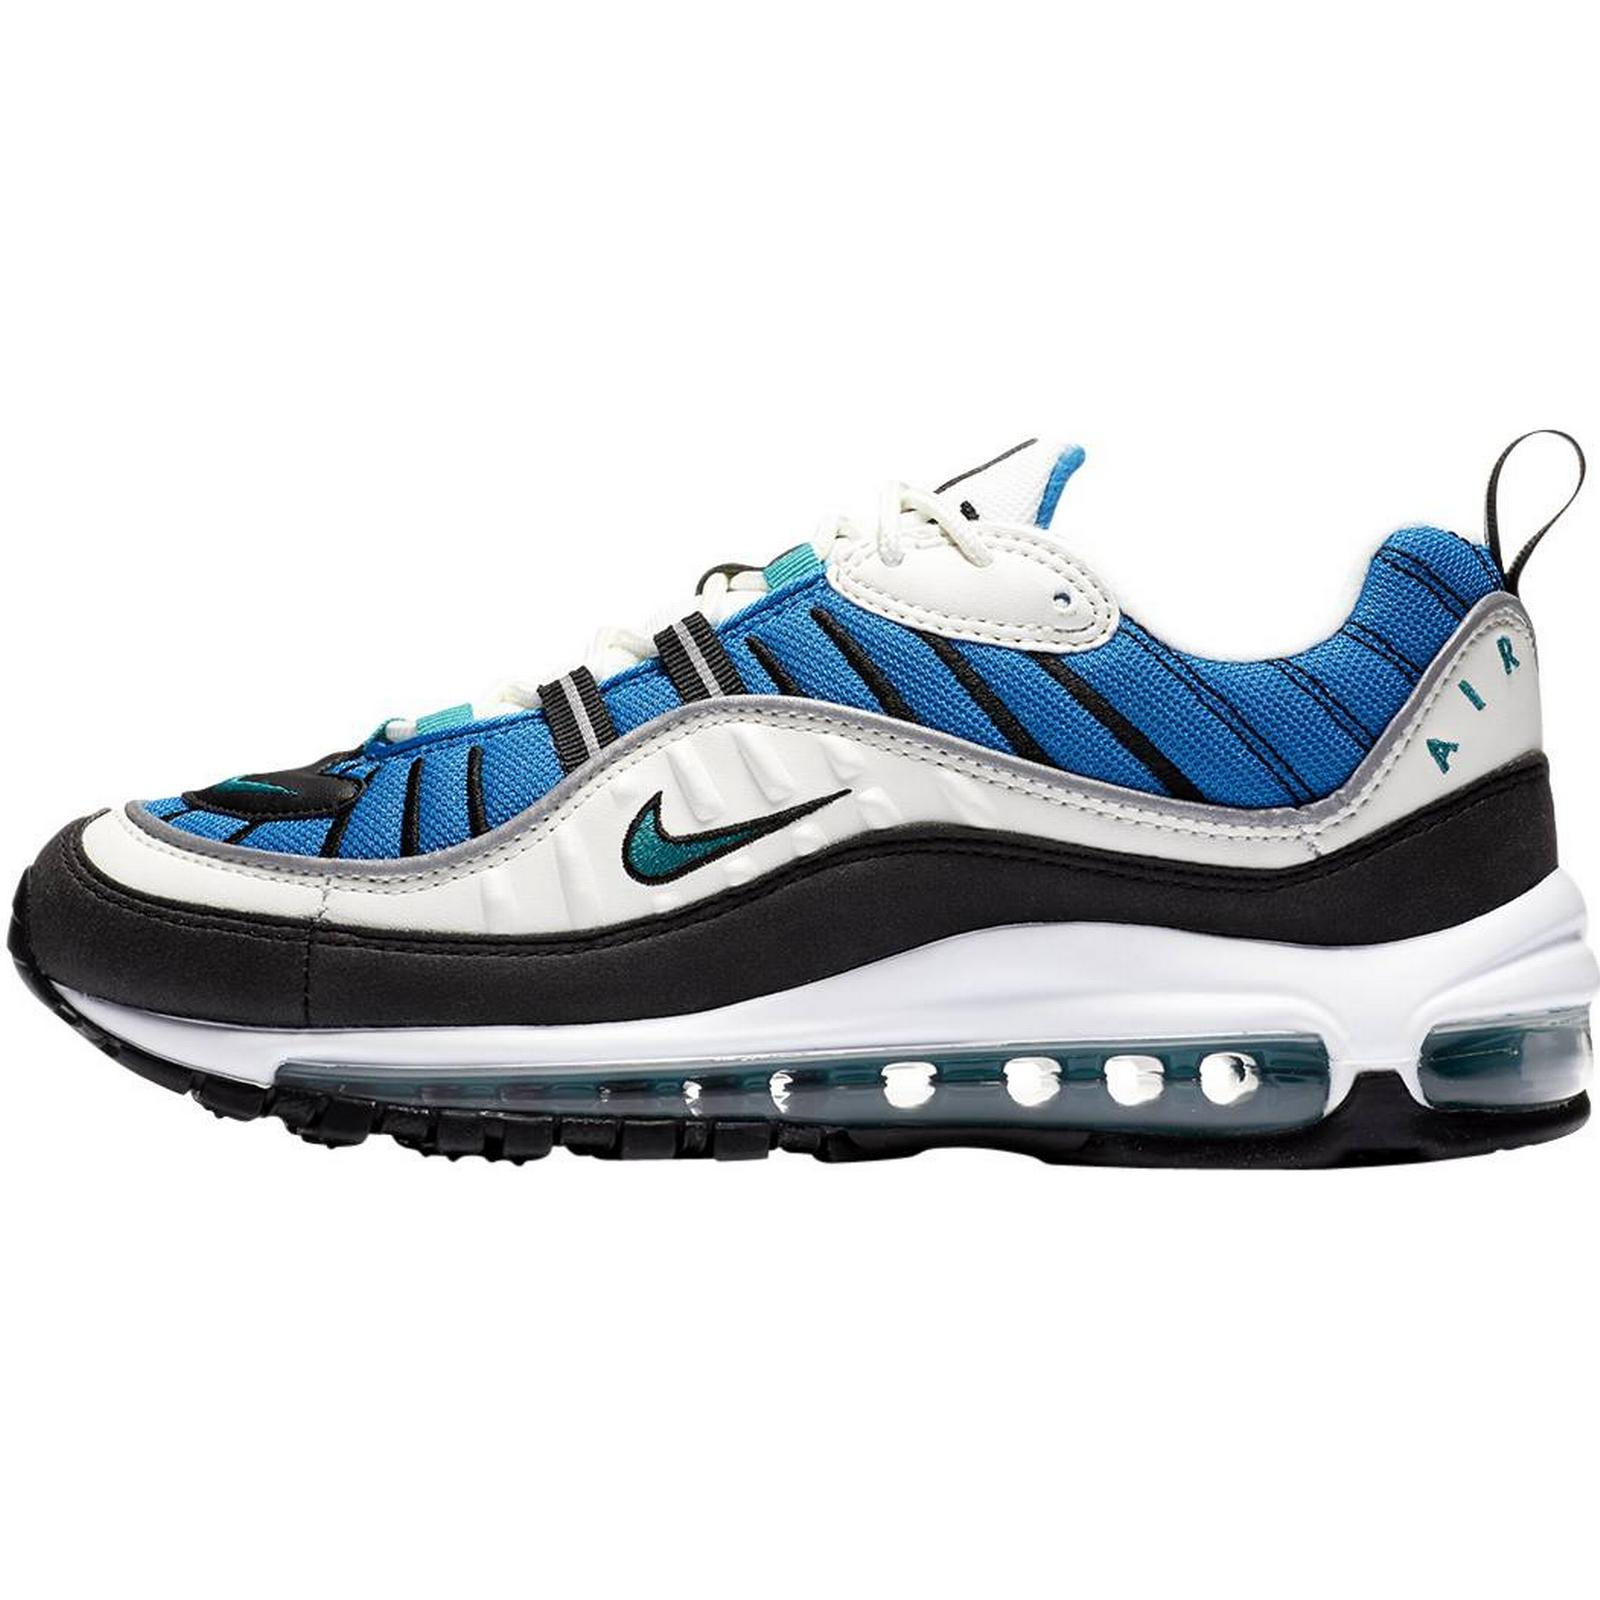 Mr/Ms 98 < Nike Air Max 98 Mr/Ms Wmns - Wit < Stable Quality 033918